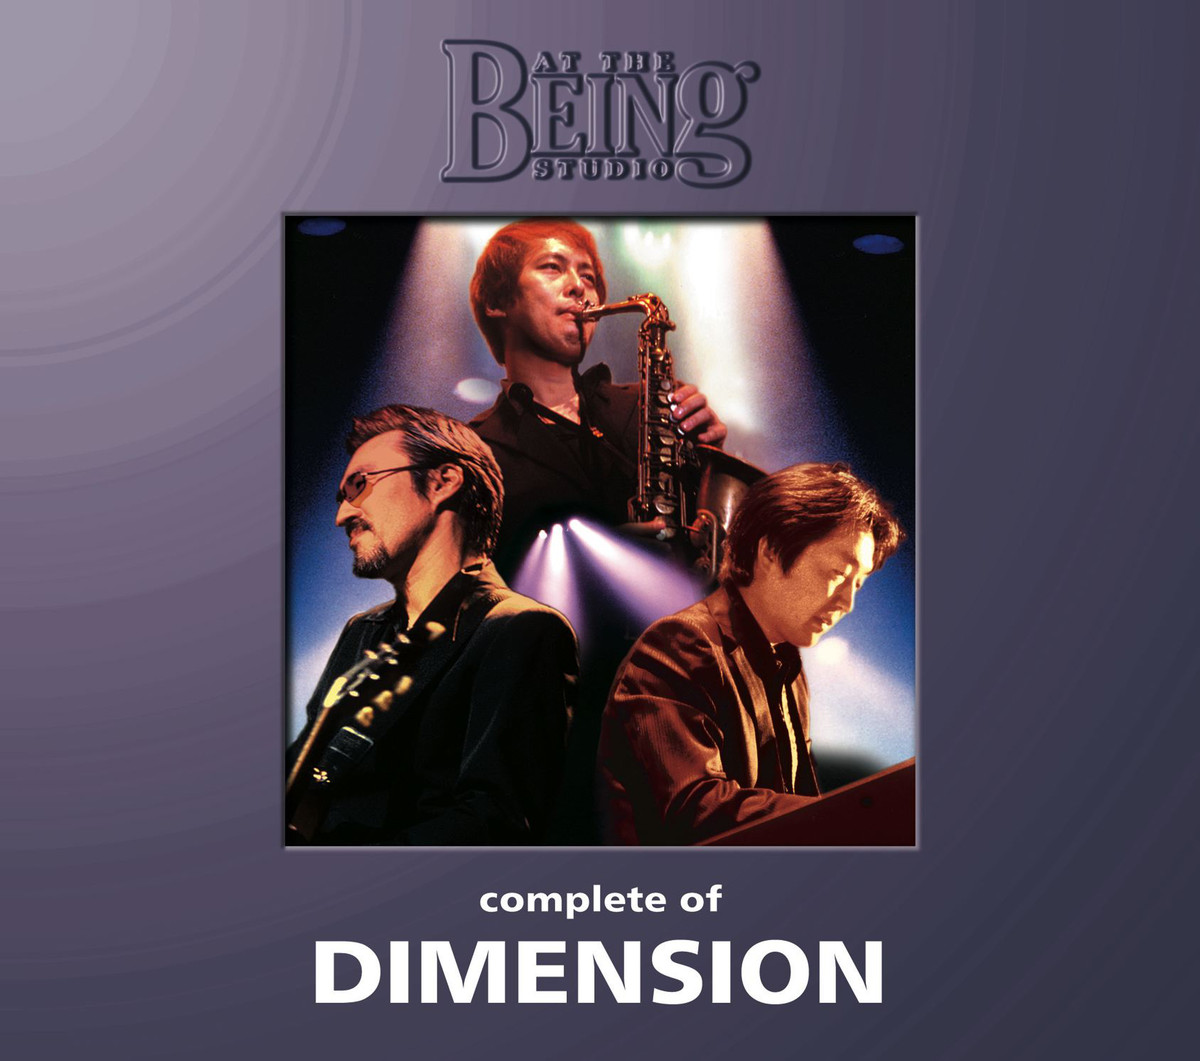 complete of DIMENSION at the Being Studio